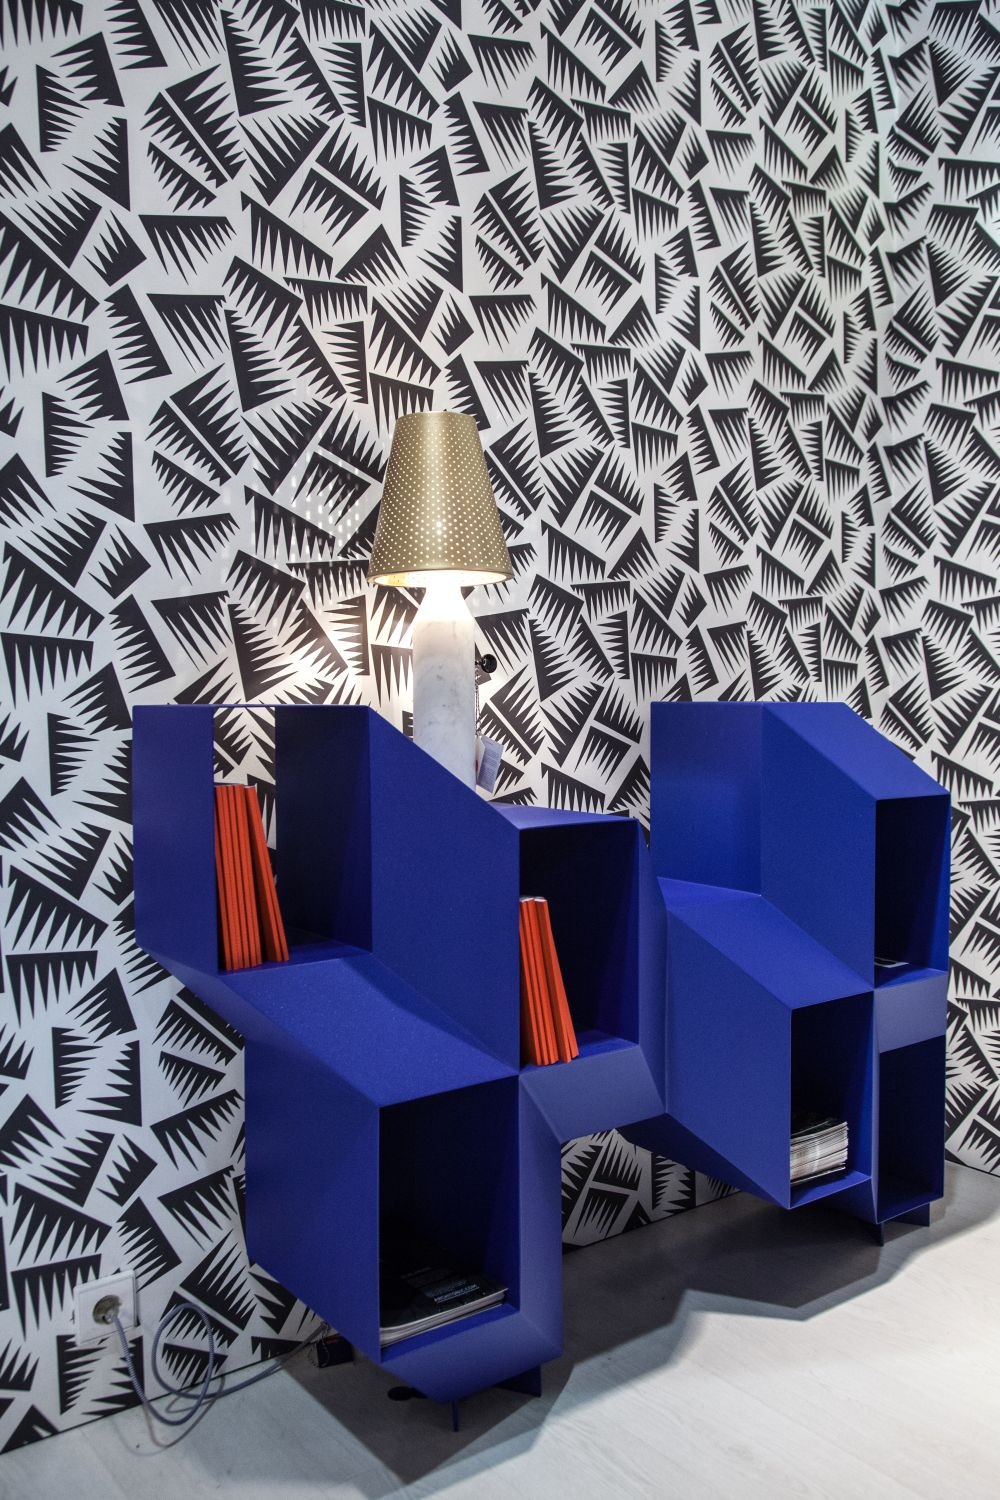 Modern Wall Bookshelves With Intricate And Unexpected Design Features